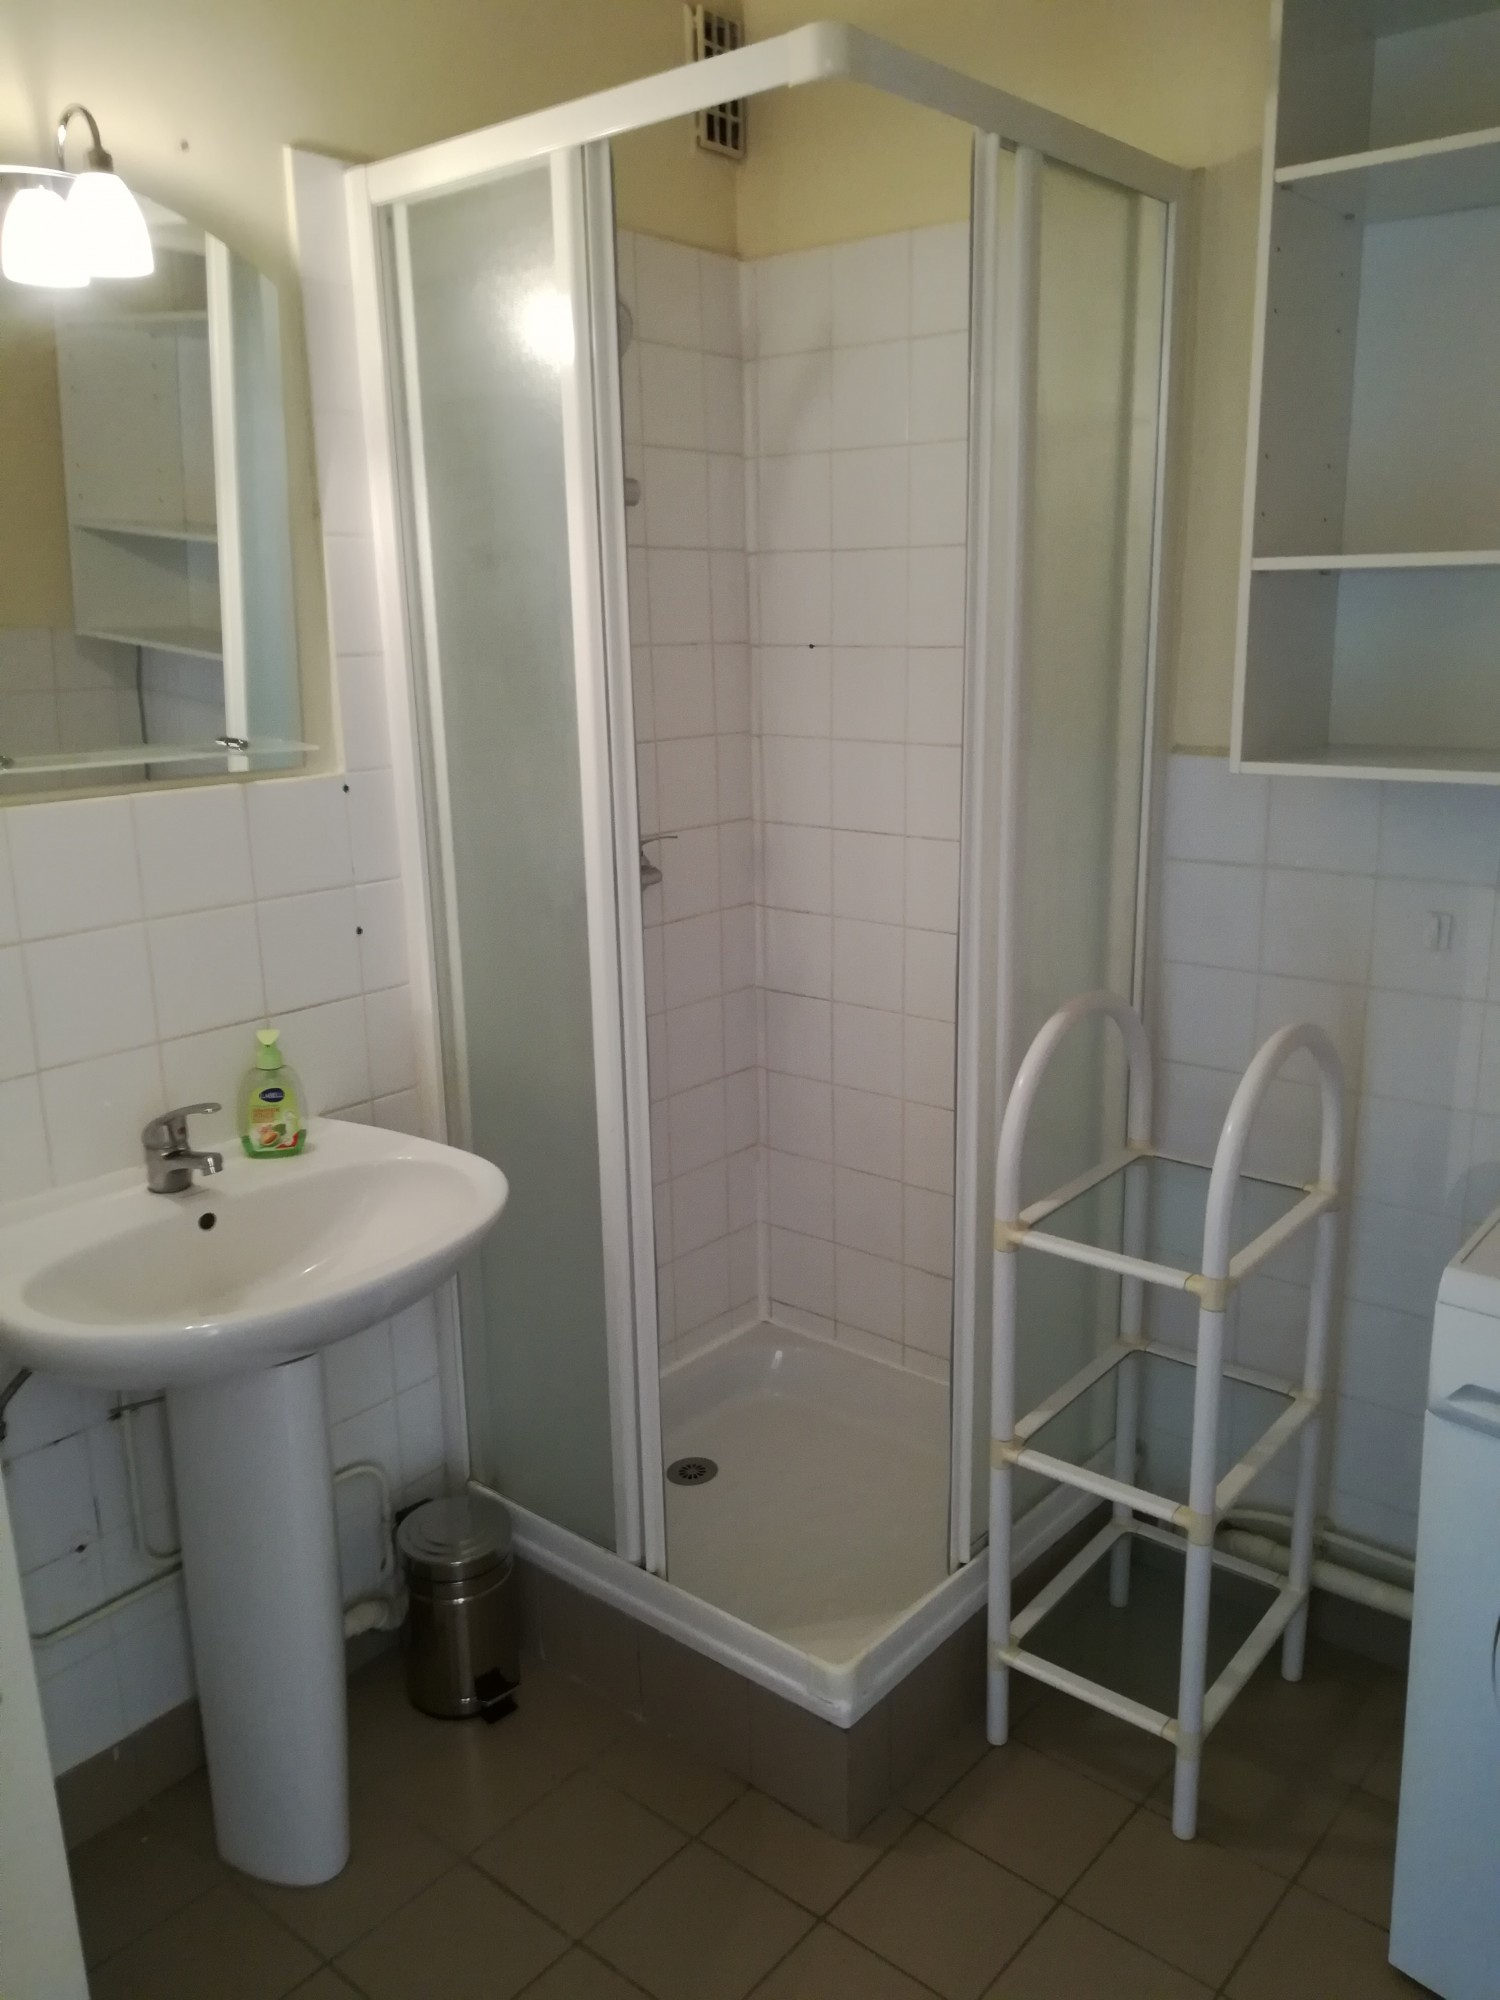 Valence ideal colocation etudiante appartement meuble proche lycee camille vernet location - Location appartement meuble valence ...